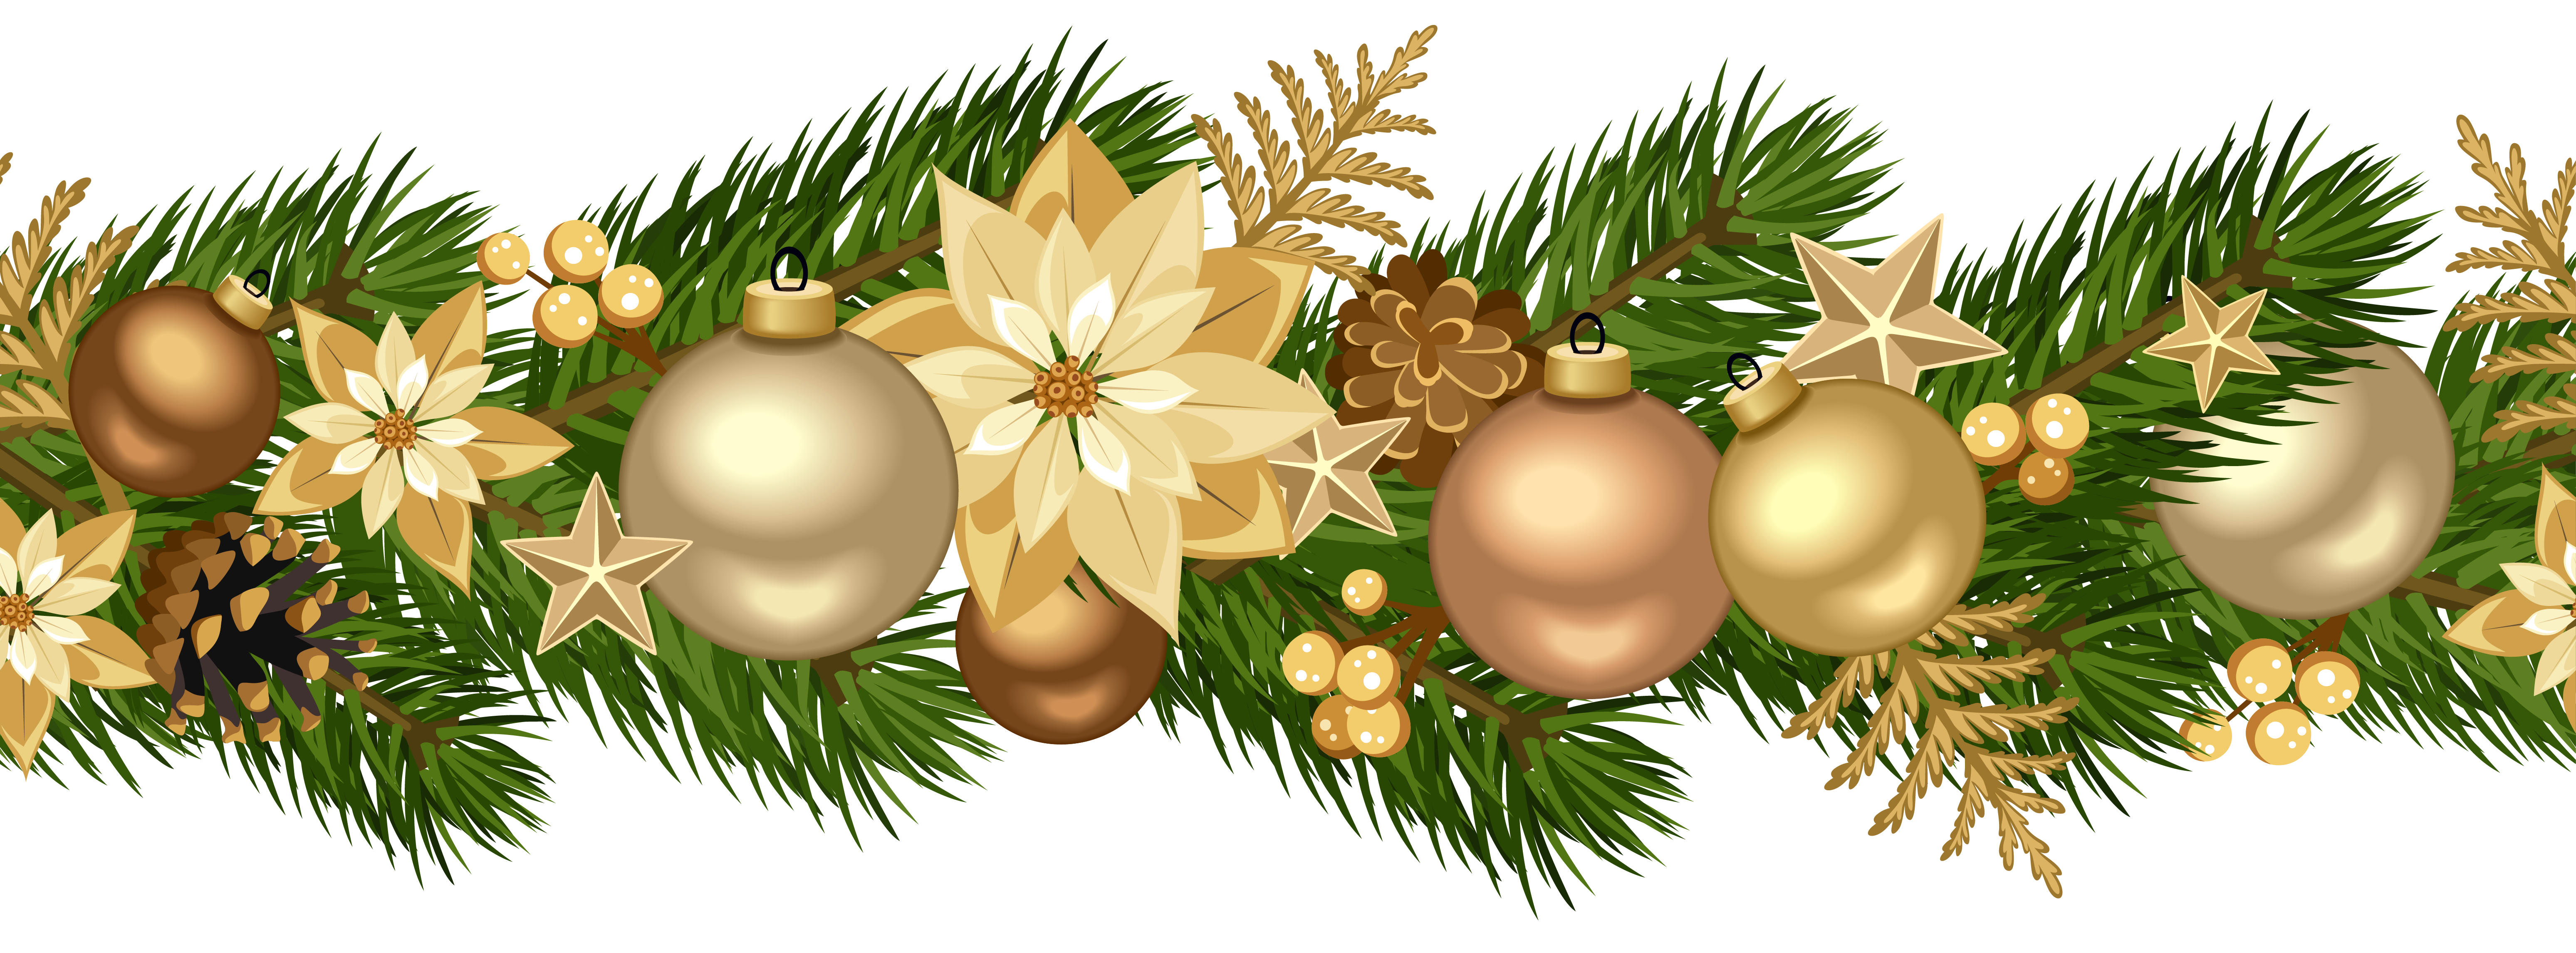 Free clipart christmas garland picture freeuse stock Christmas Decorative Golden Garland PNG Clip Art Image | Gallery ... picture freeuse stock